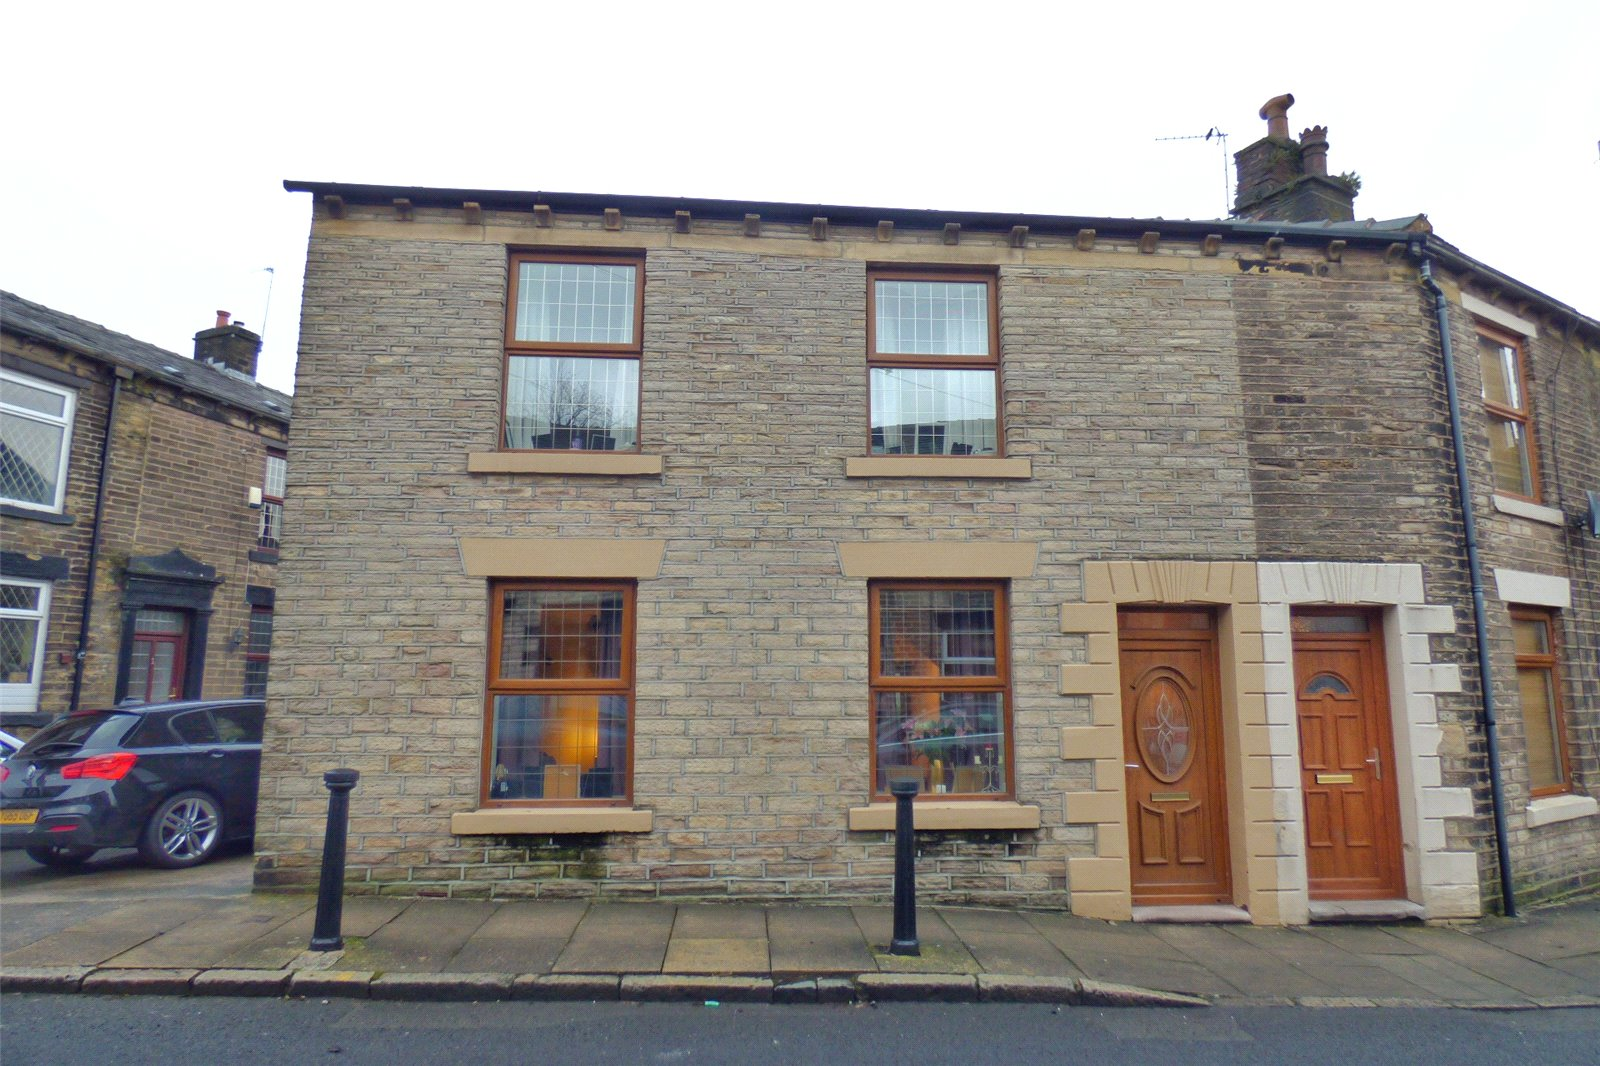 4 Bedrooms End Of Terrace House for sale in Church Street, Lees, Oldham, Greater Manchester, OL4